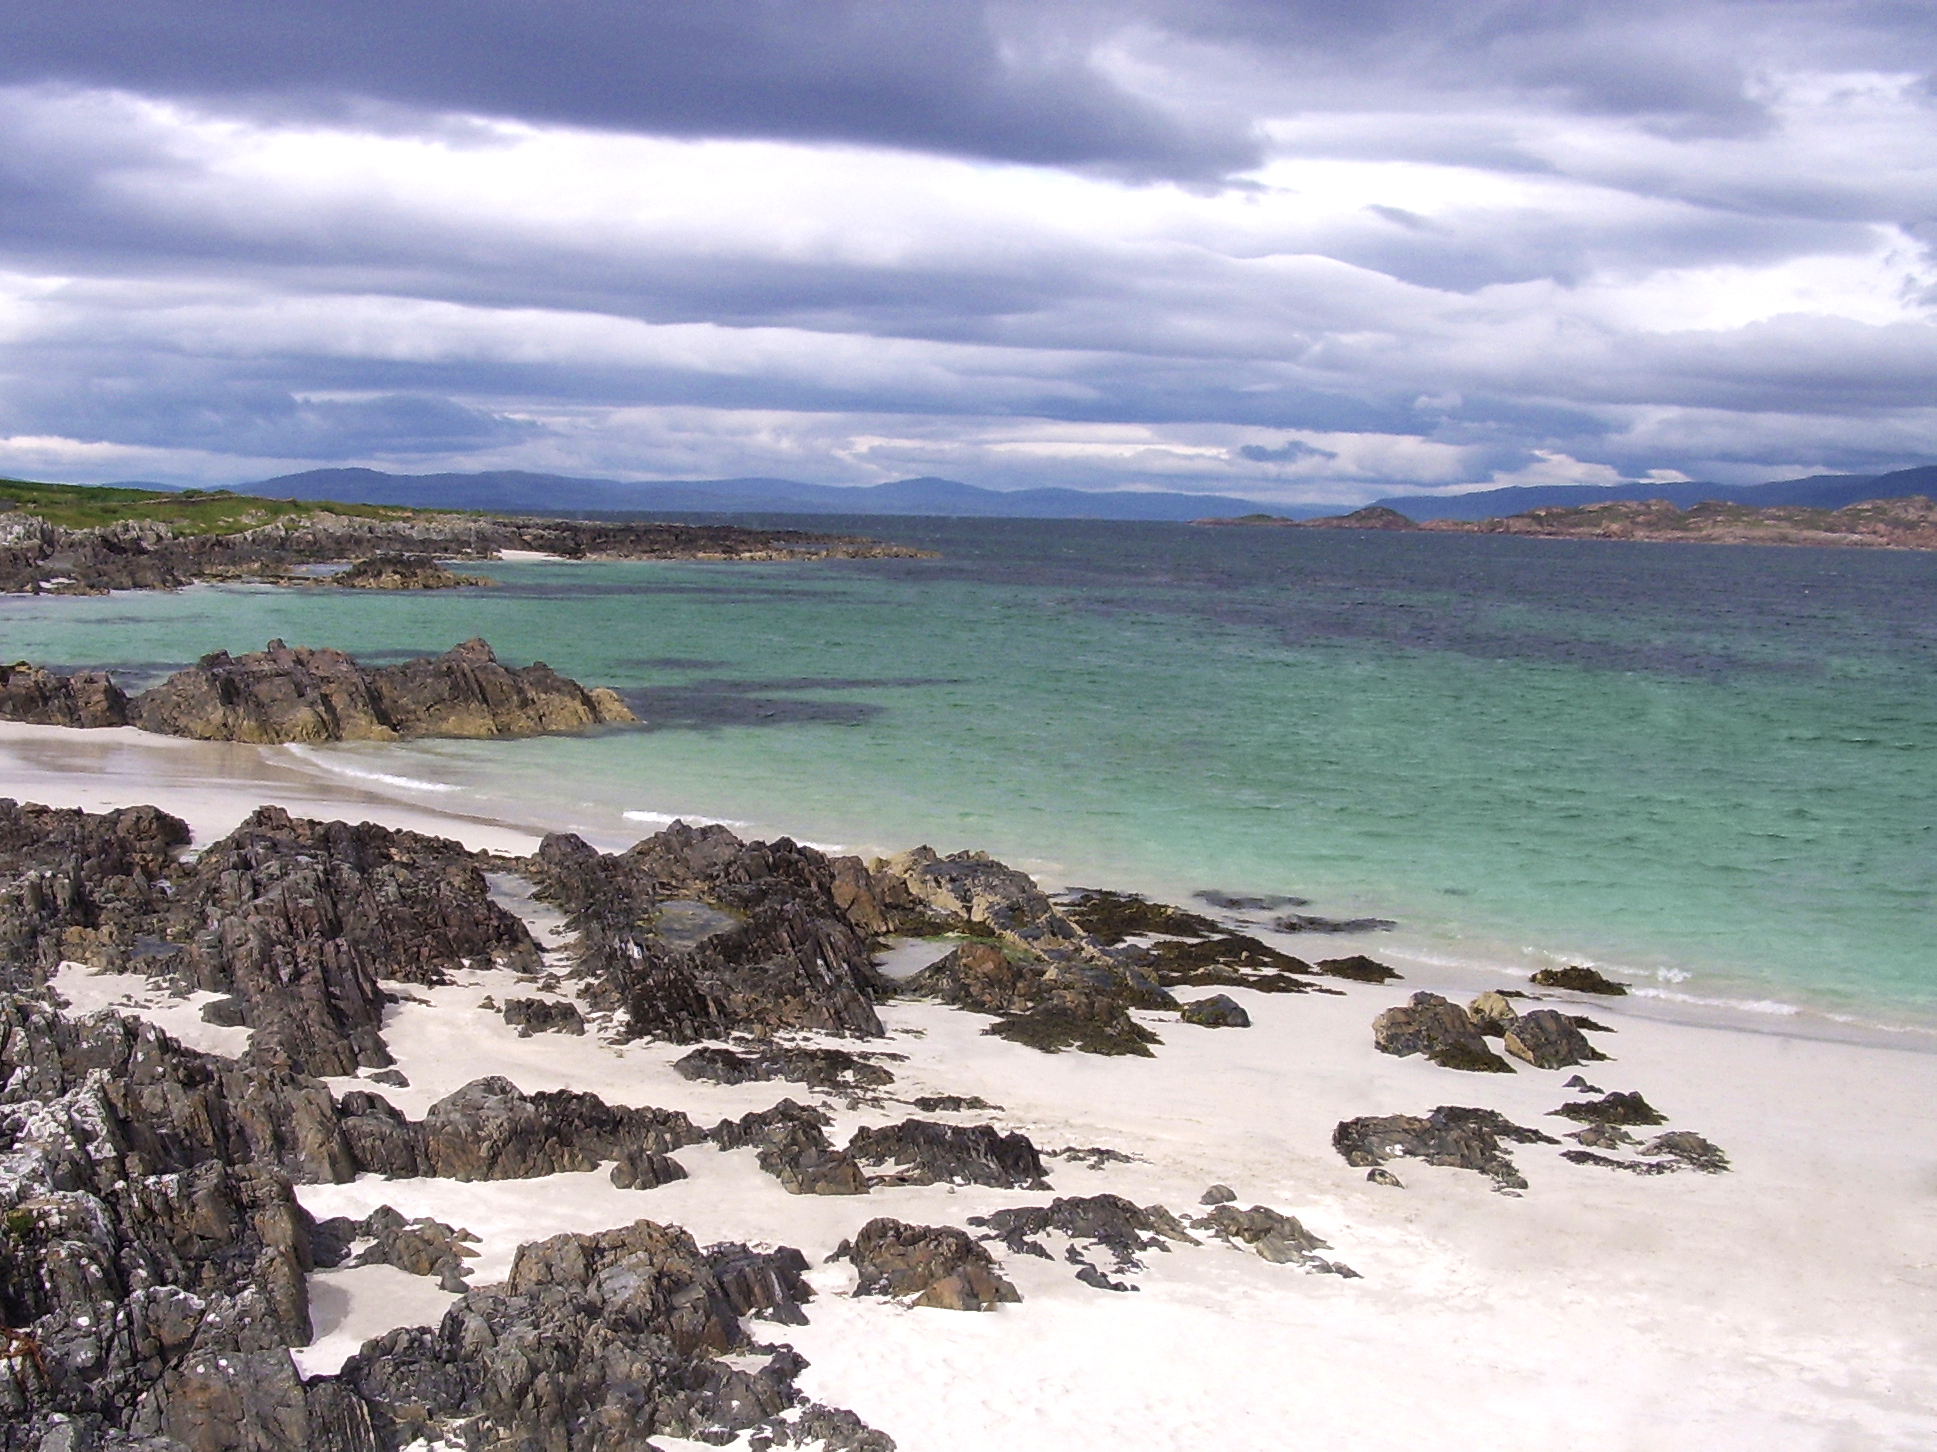 Image of the beach at Iona enhanced.